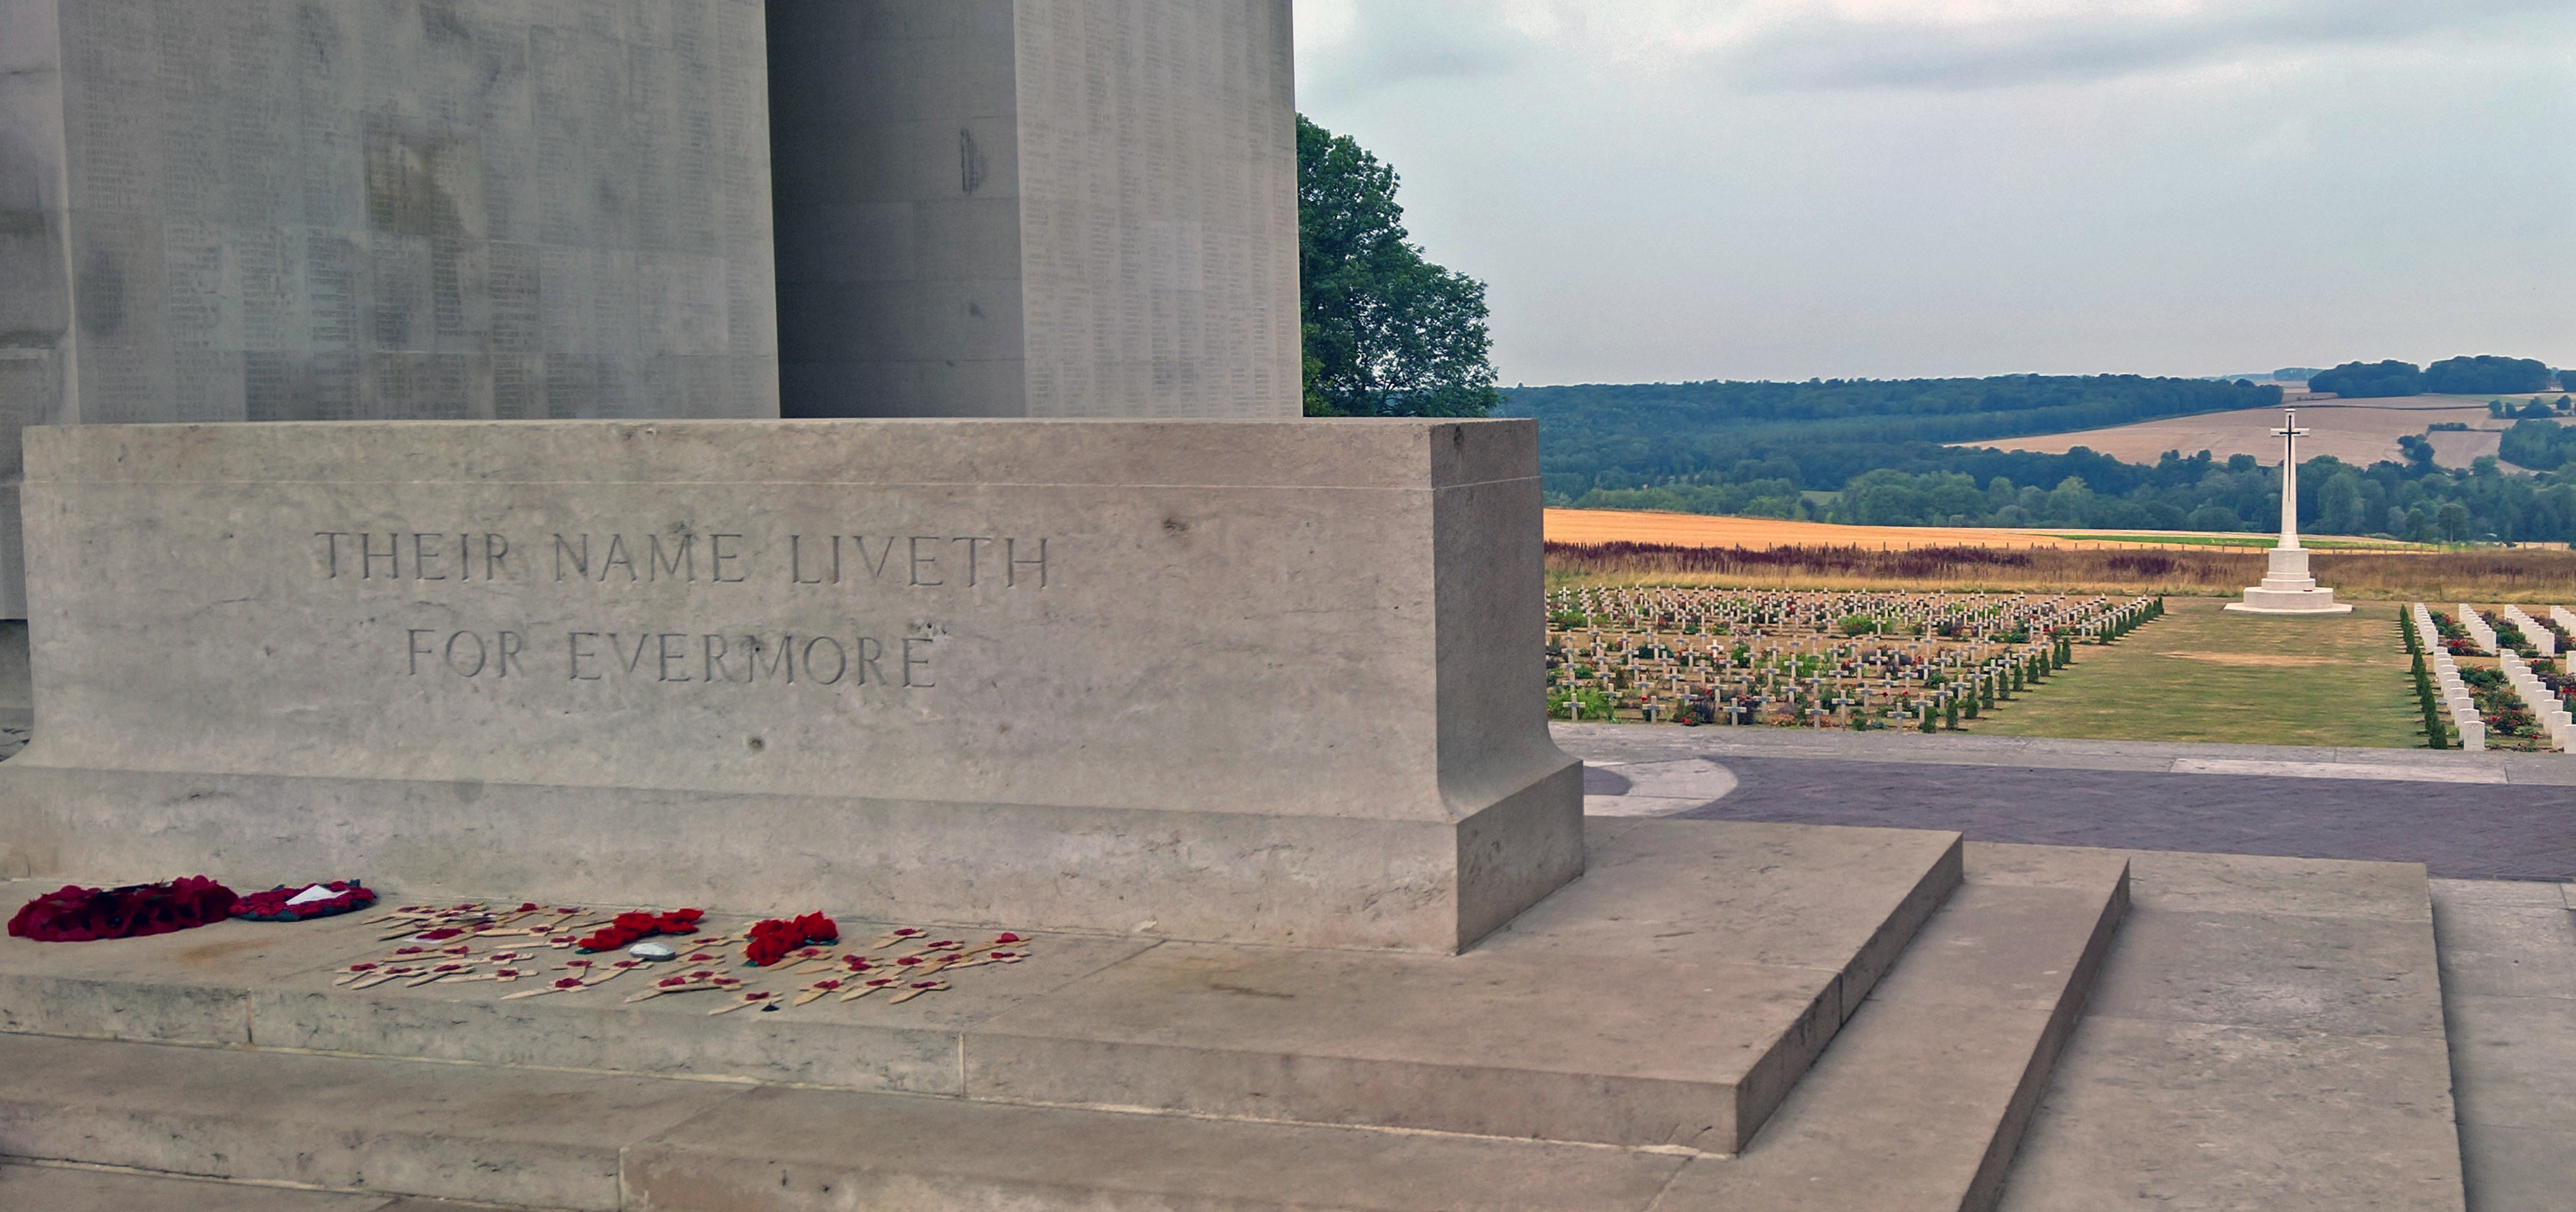 Thiepval - Their Name Liveth for Evermore